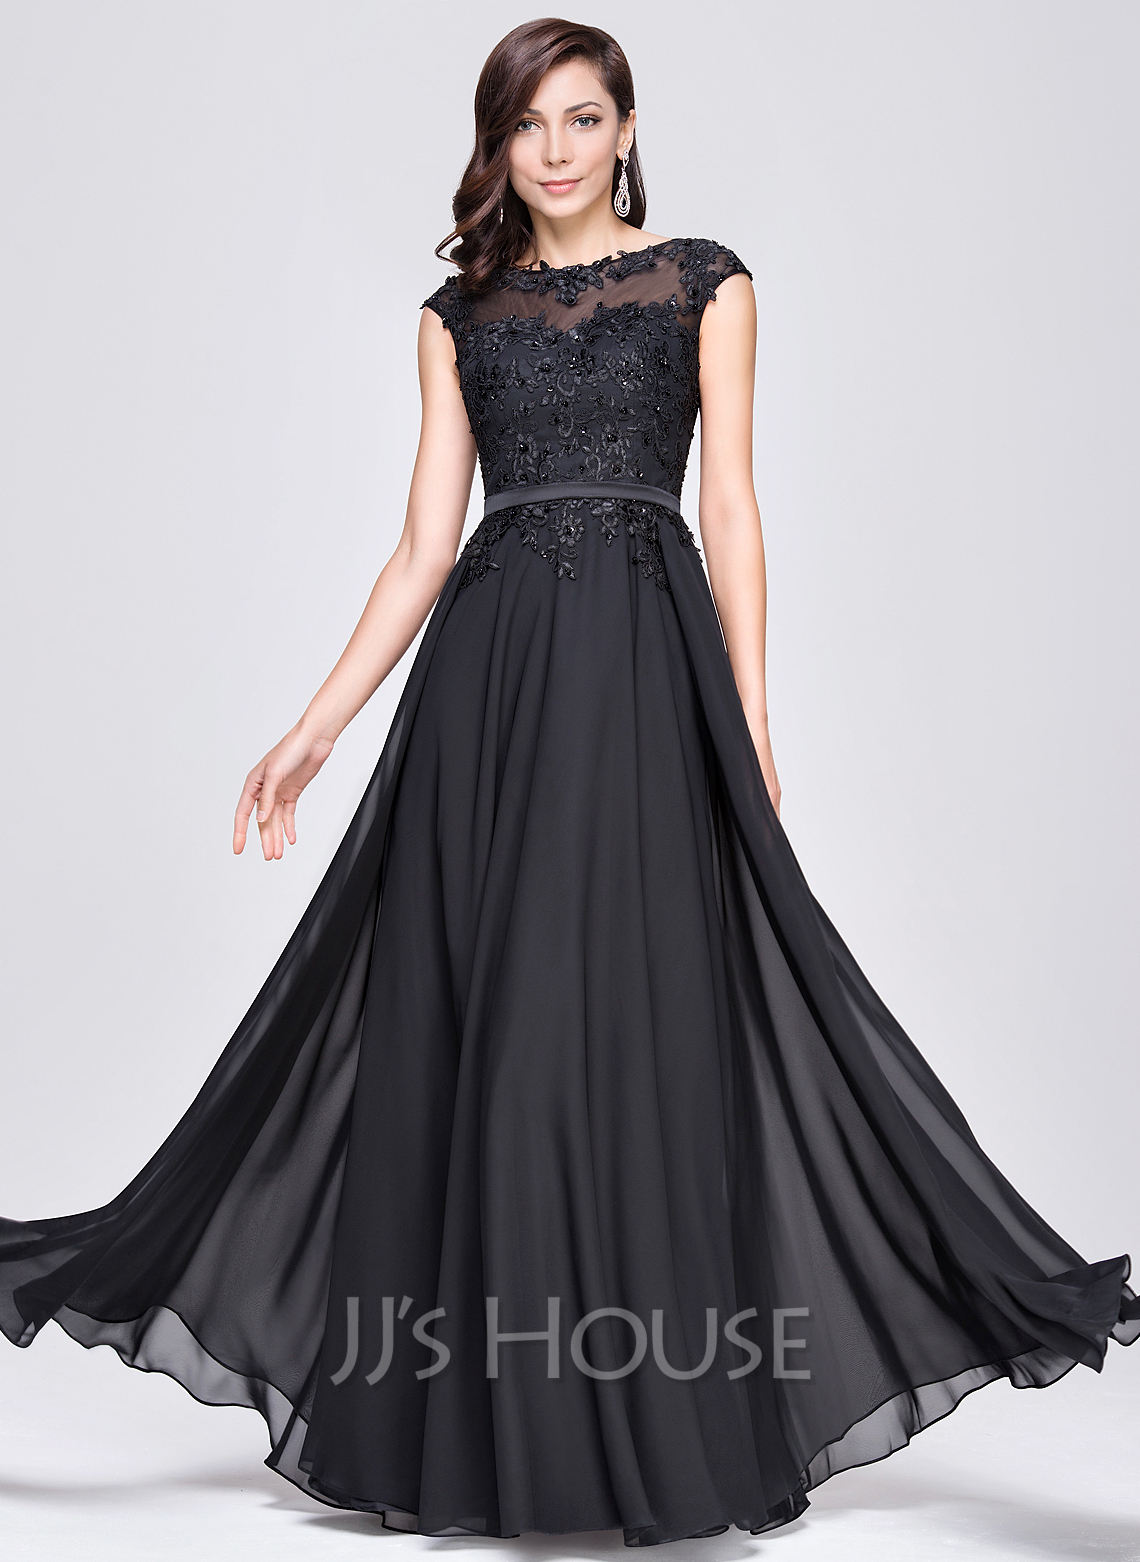 b386b2bc99697 A-Line/Princess Scoop Neck Floor-Length Chiffon Evening Dress With Beading  Appliques. Loading zoom